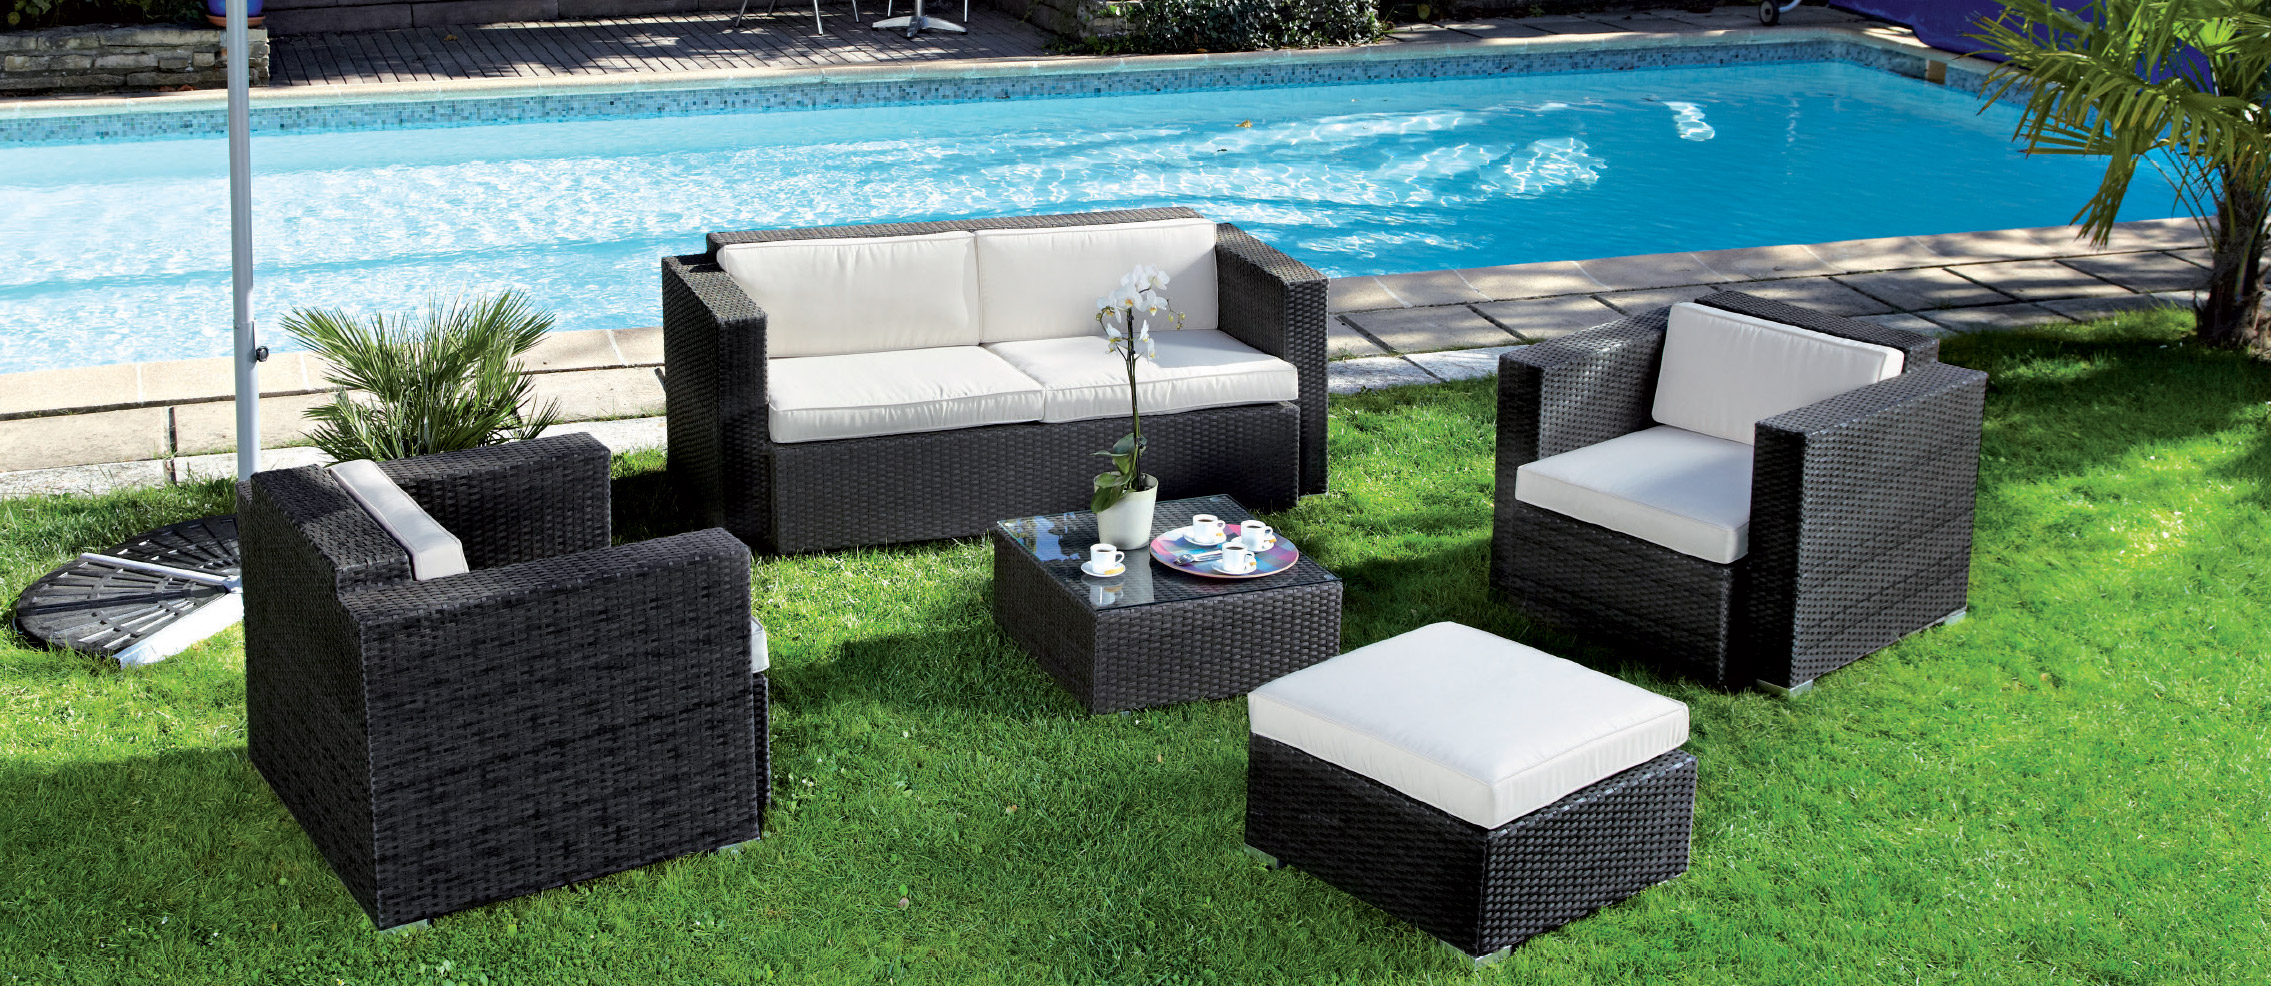 salon de jardin pas cher 17 id es de d coration. Black Bedroom Furniture Sets. Home Design Ideas